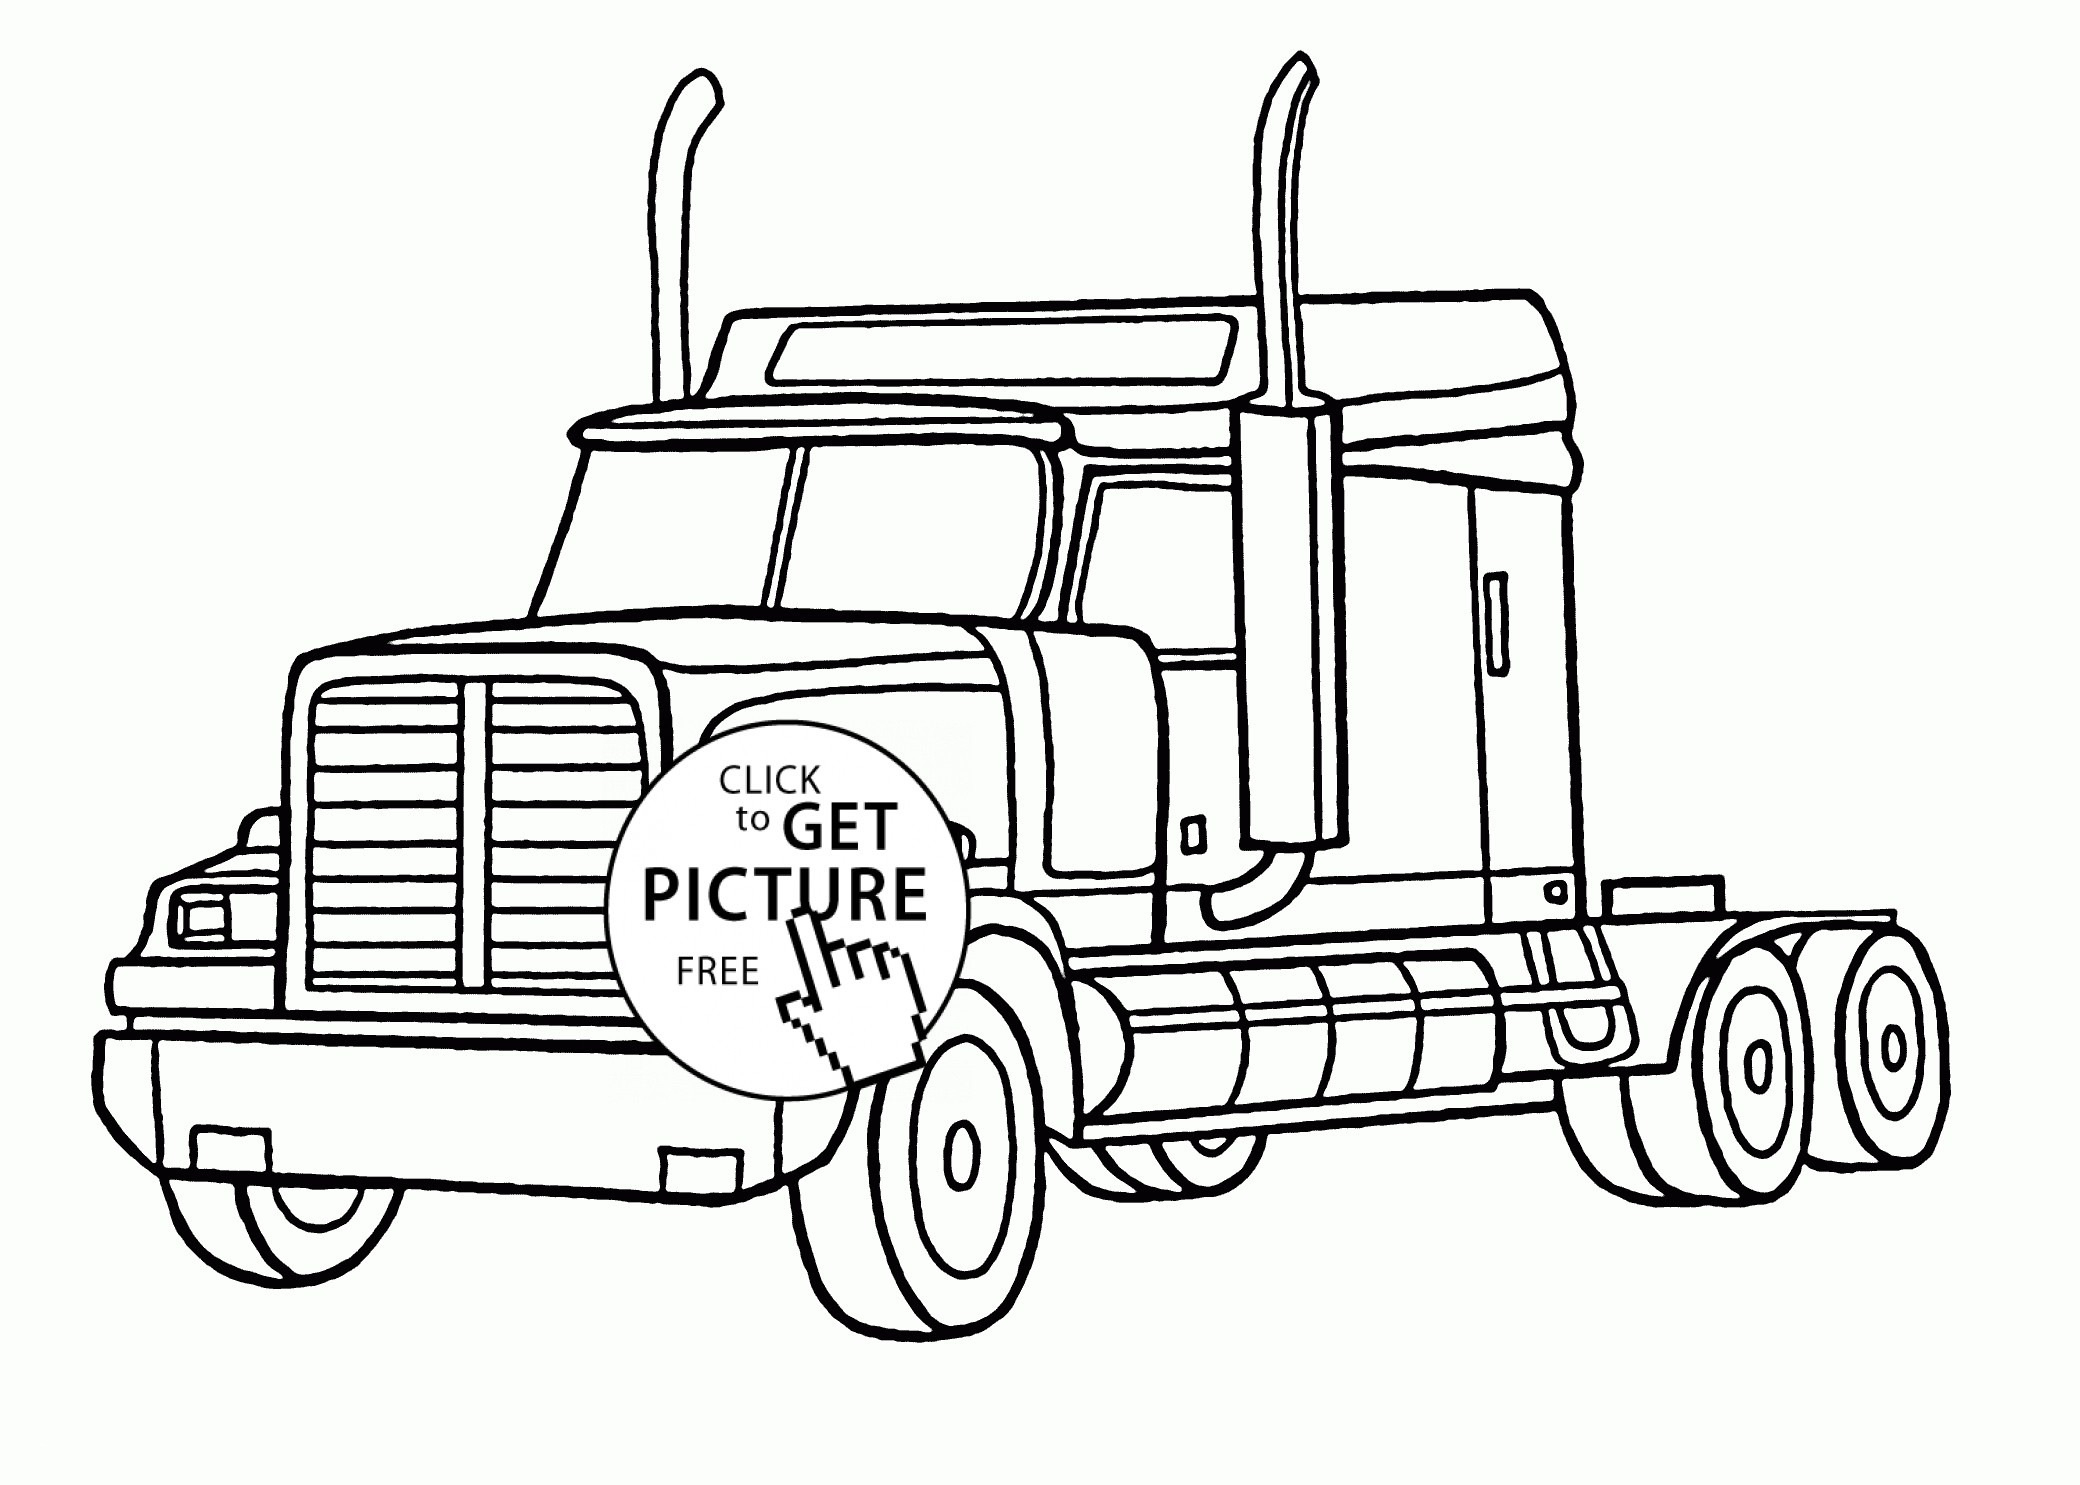 Ford Truck Coloring Pages  Printable 10q - Free Download